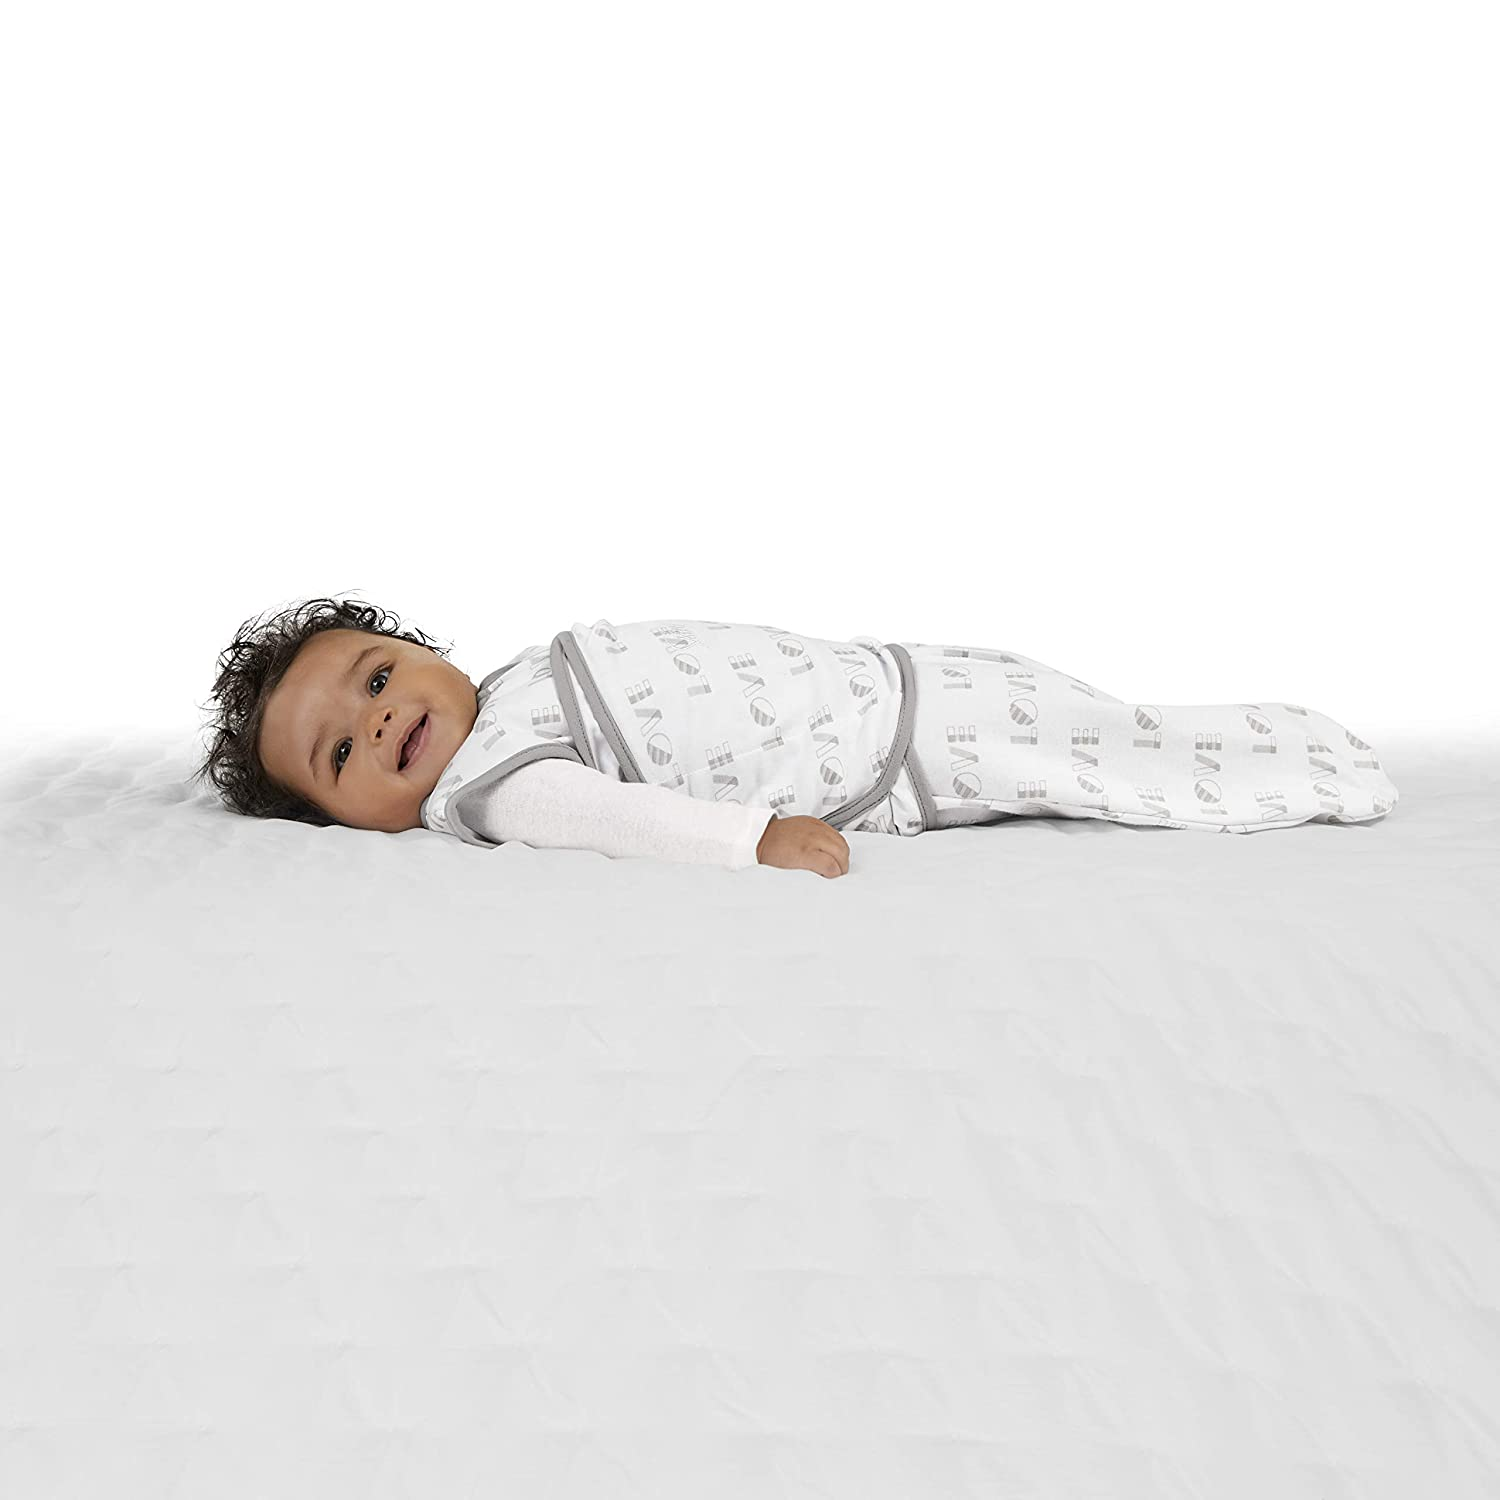 1-Pack Size Extra Large 6-9 Months Lil Off Roader/ SwaddleMe Arms Free Convertible Swaddle